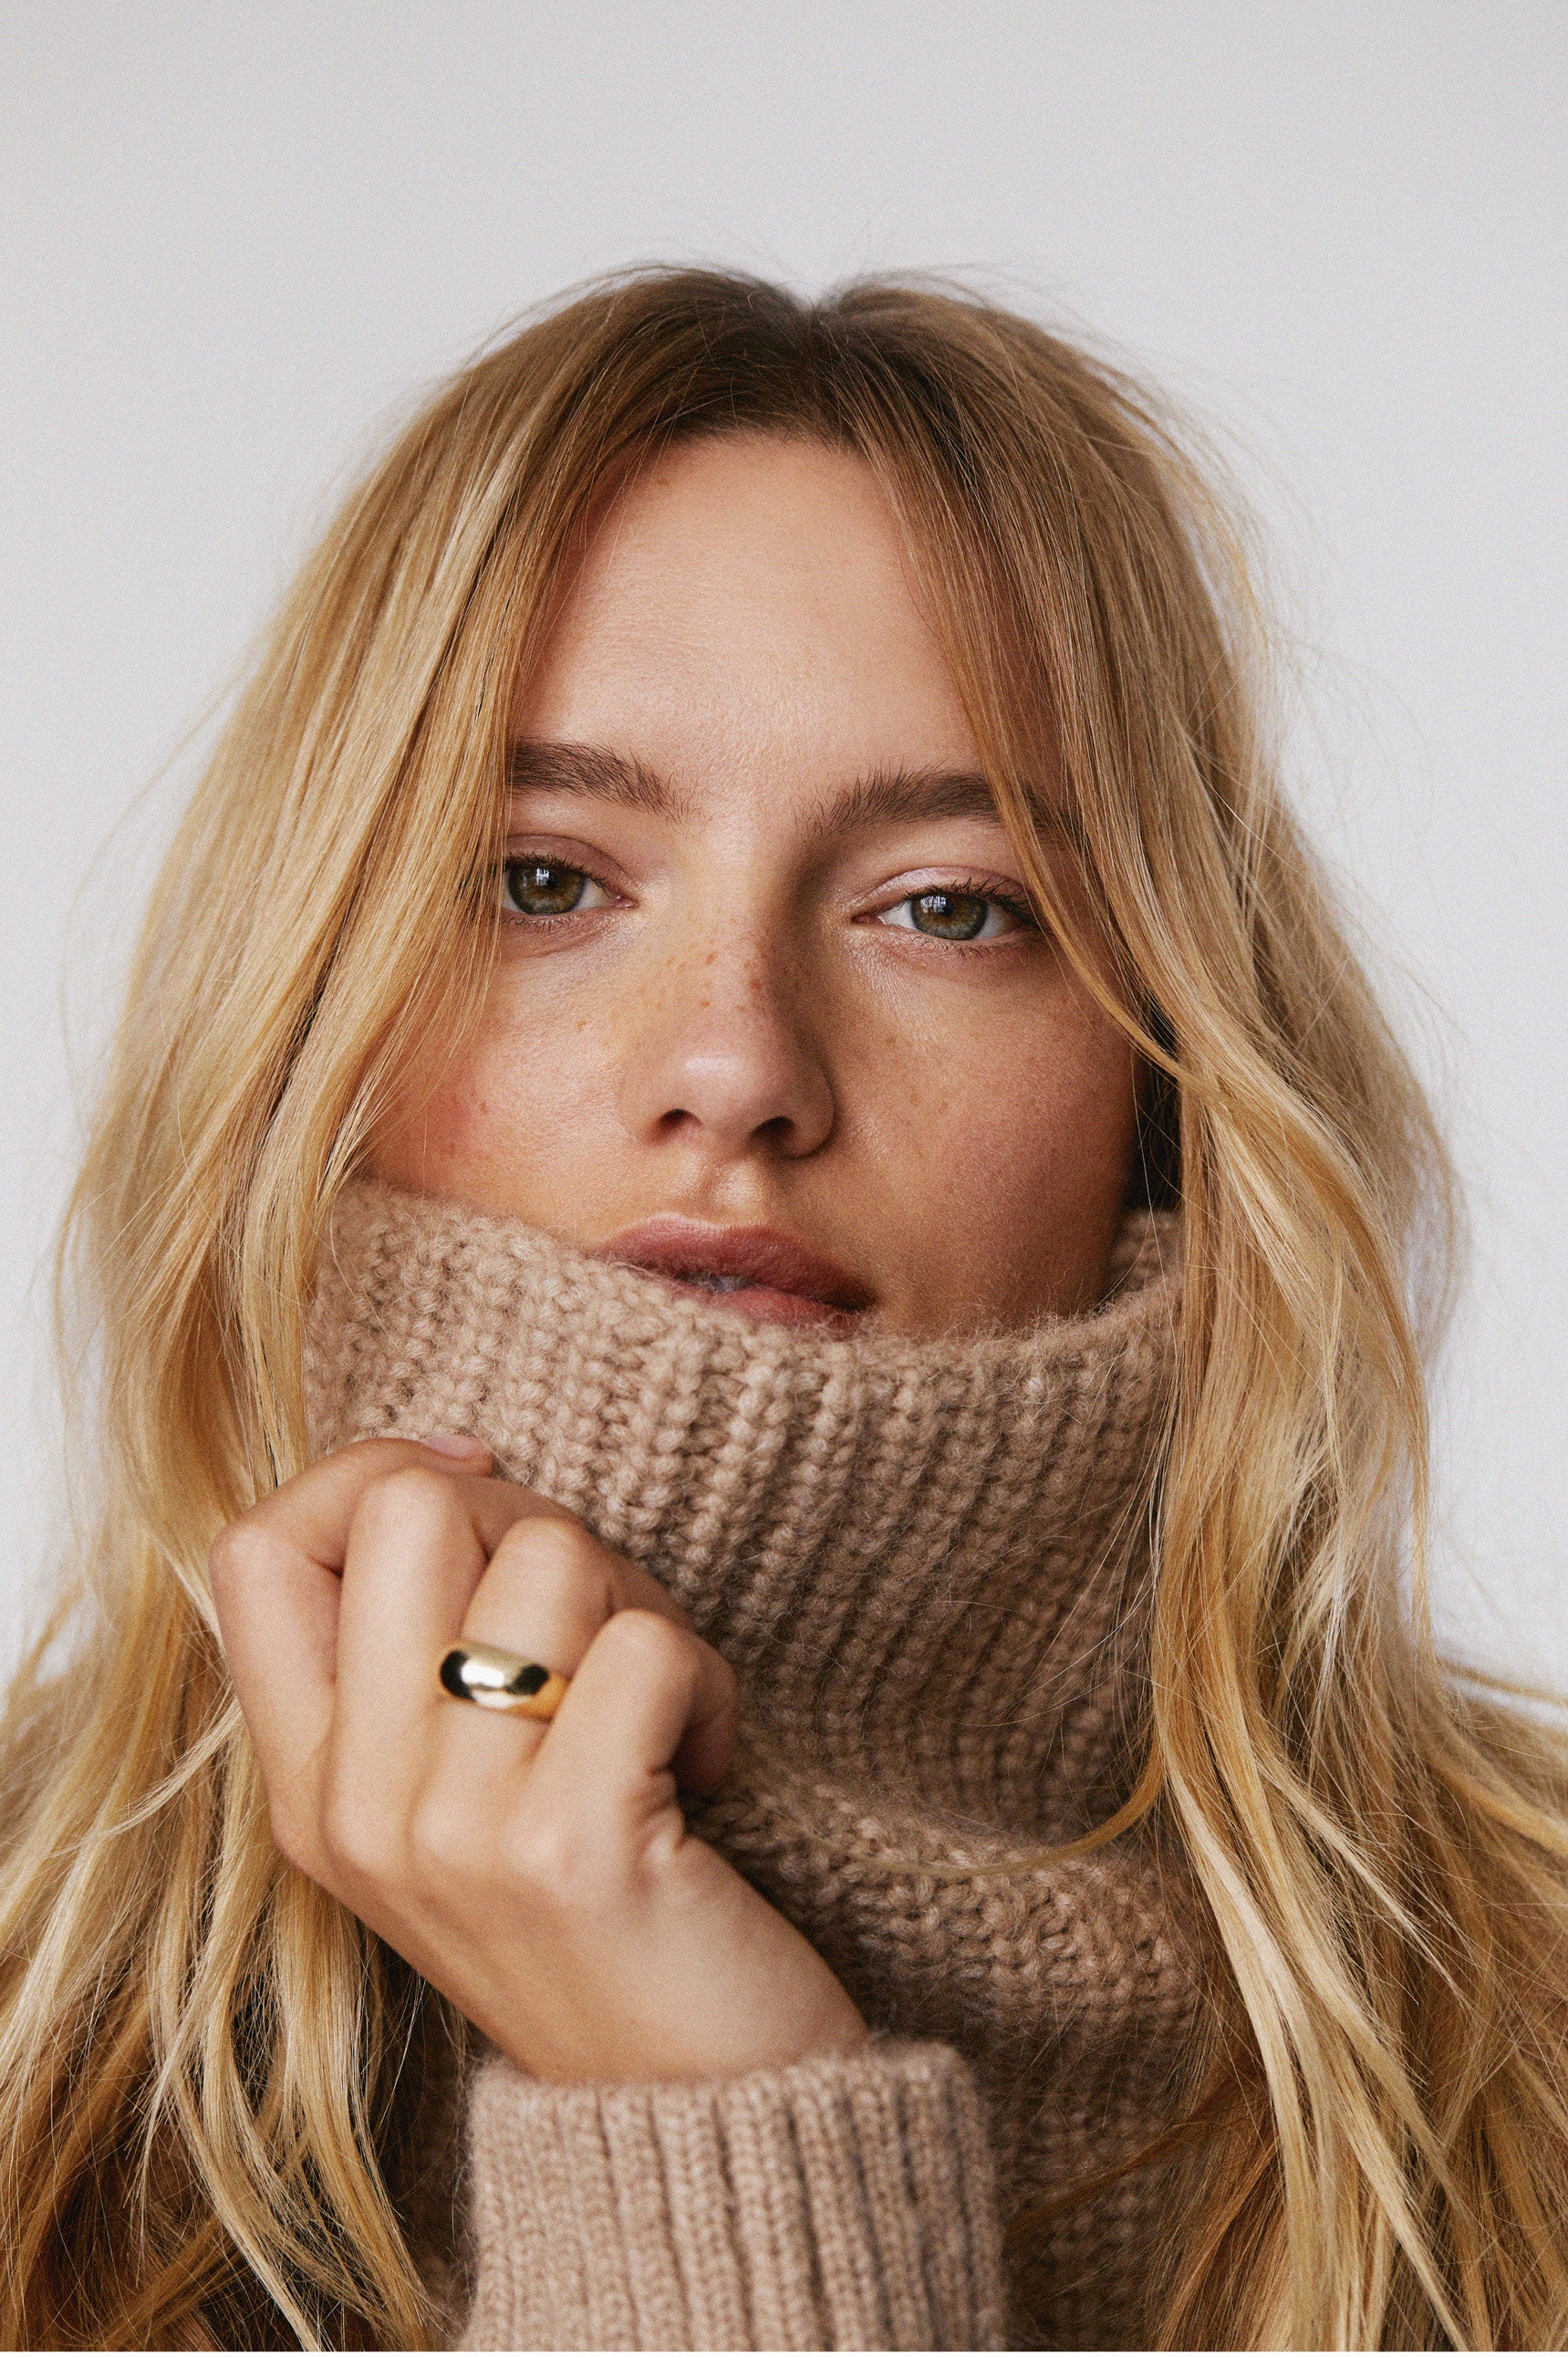 "<p><a href=""/products/sydney-sweater-camel"" title=""Sydney Sweater - Camel"">SYDNEY SWEATER</a> 